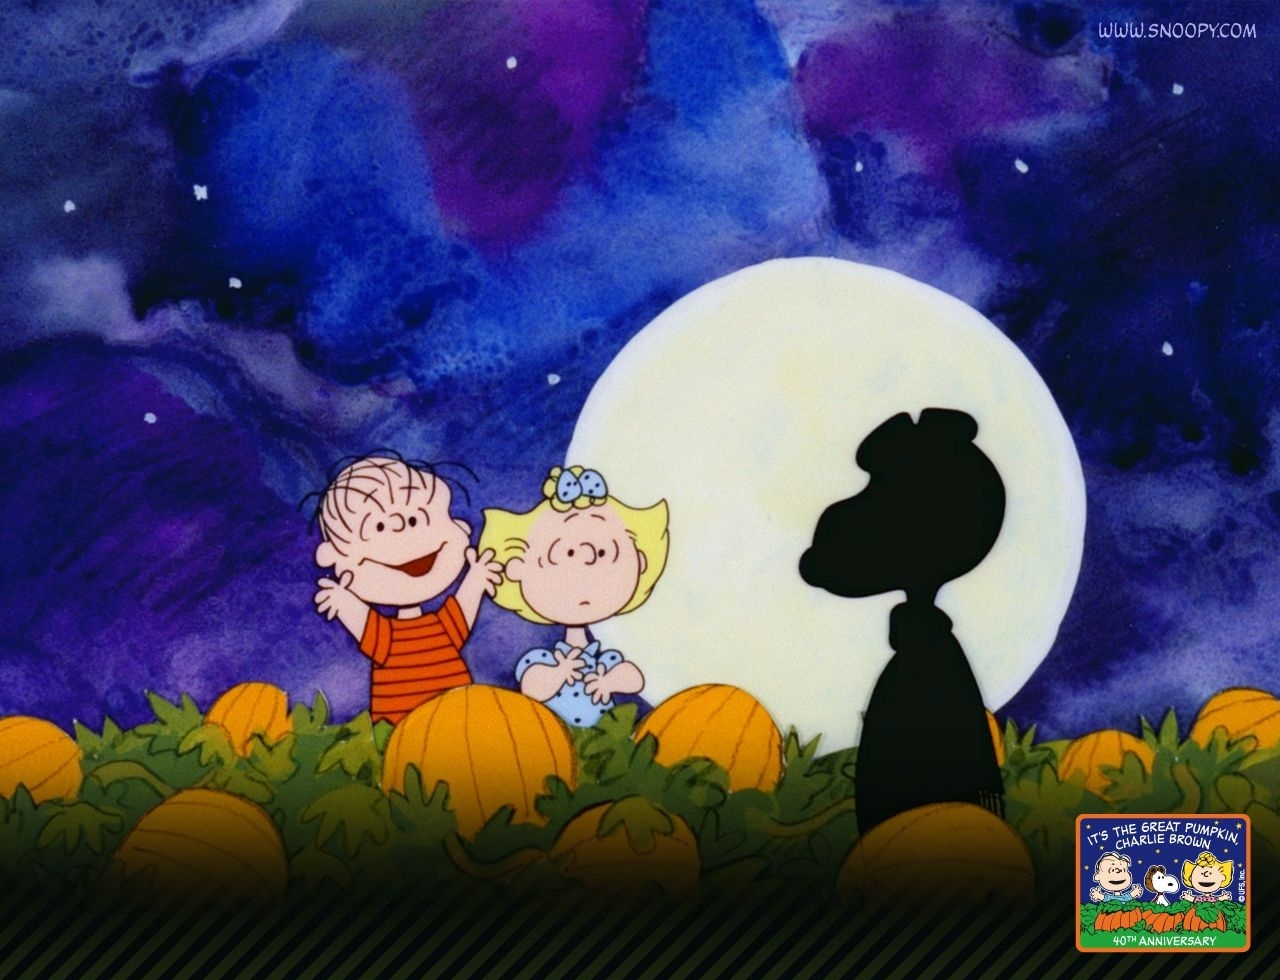 peanuts halloween wallpaper | snoopy desktops / free movie